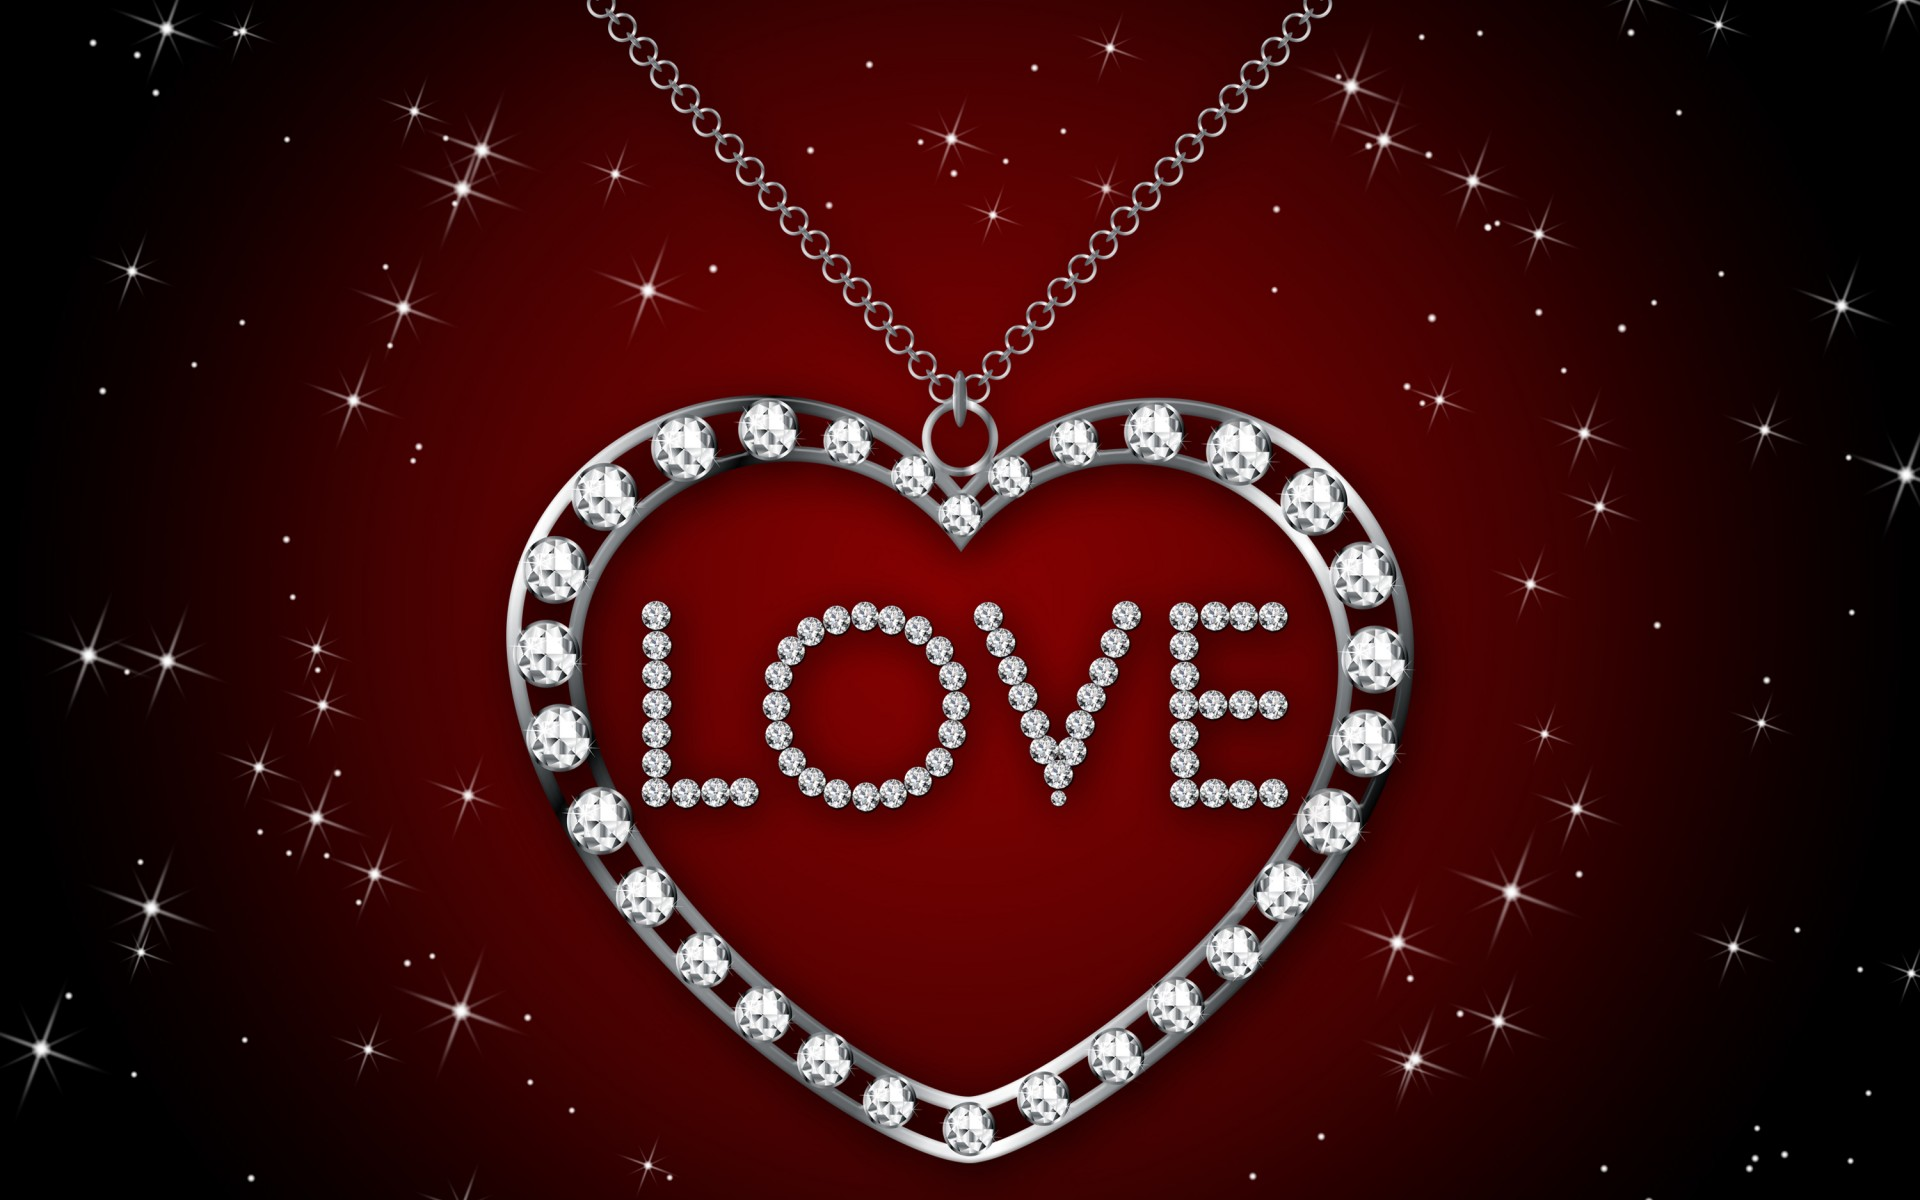 Diamond Heart Necklace Wallpapers